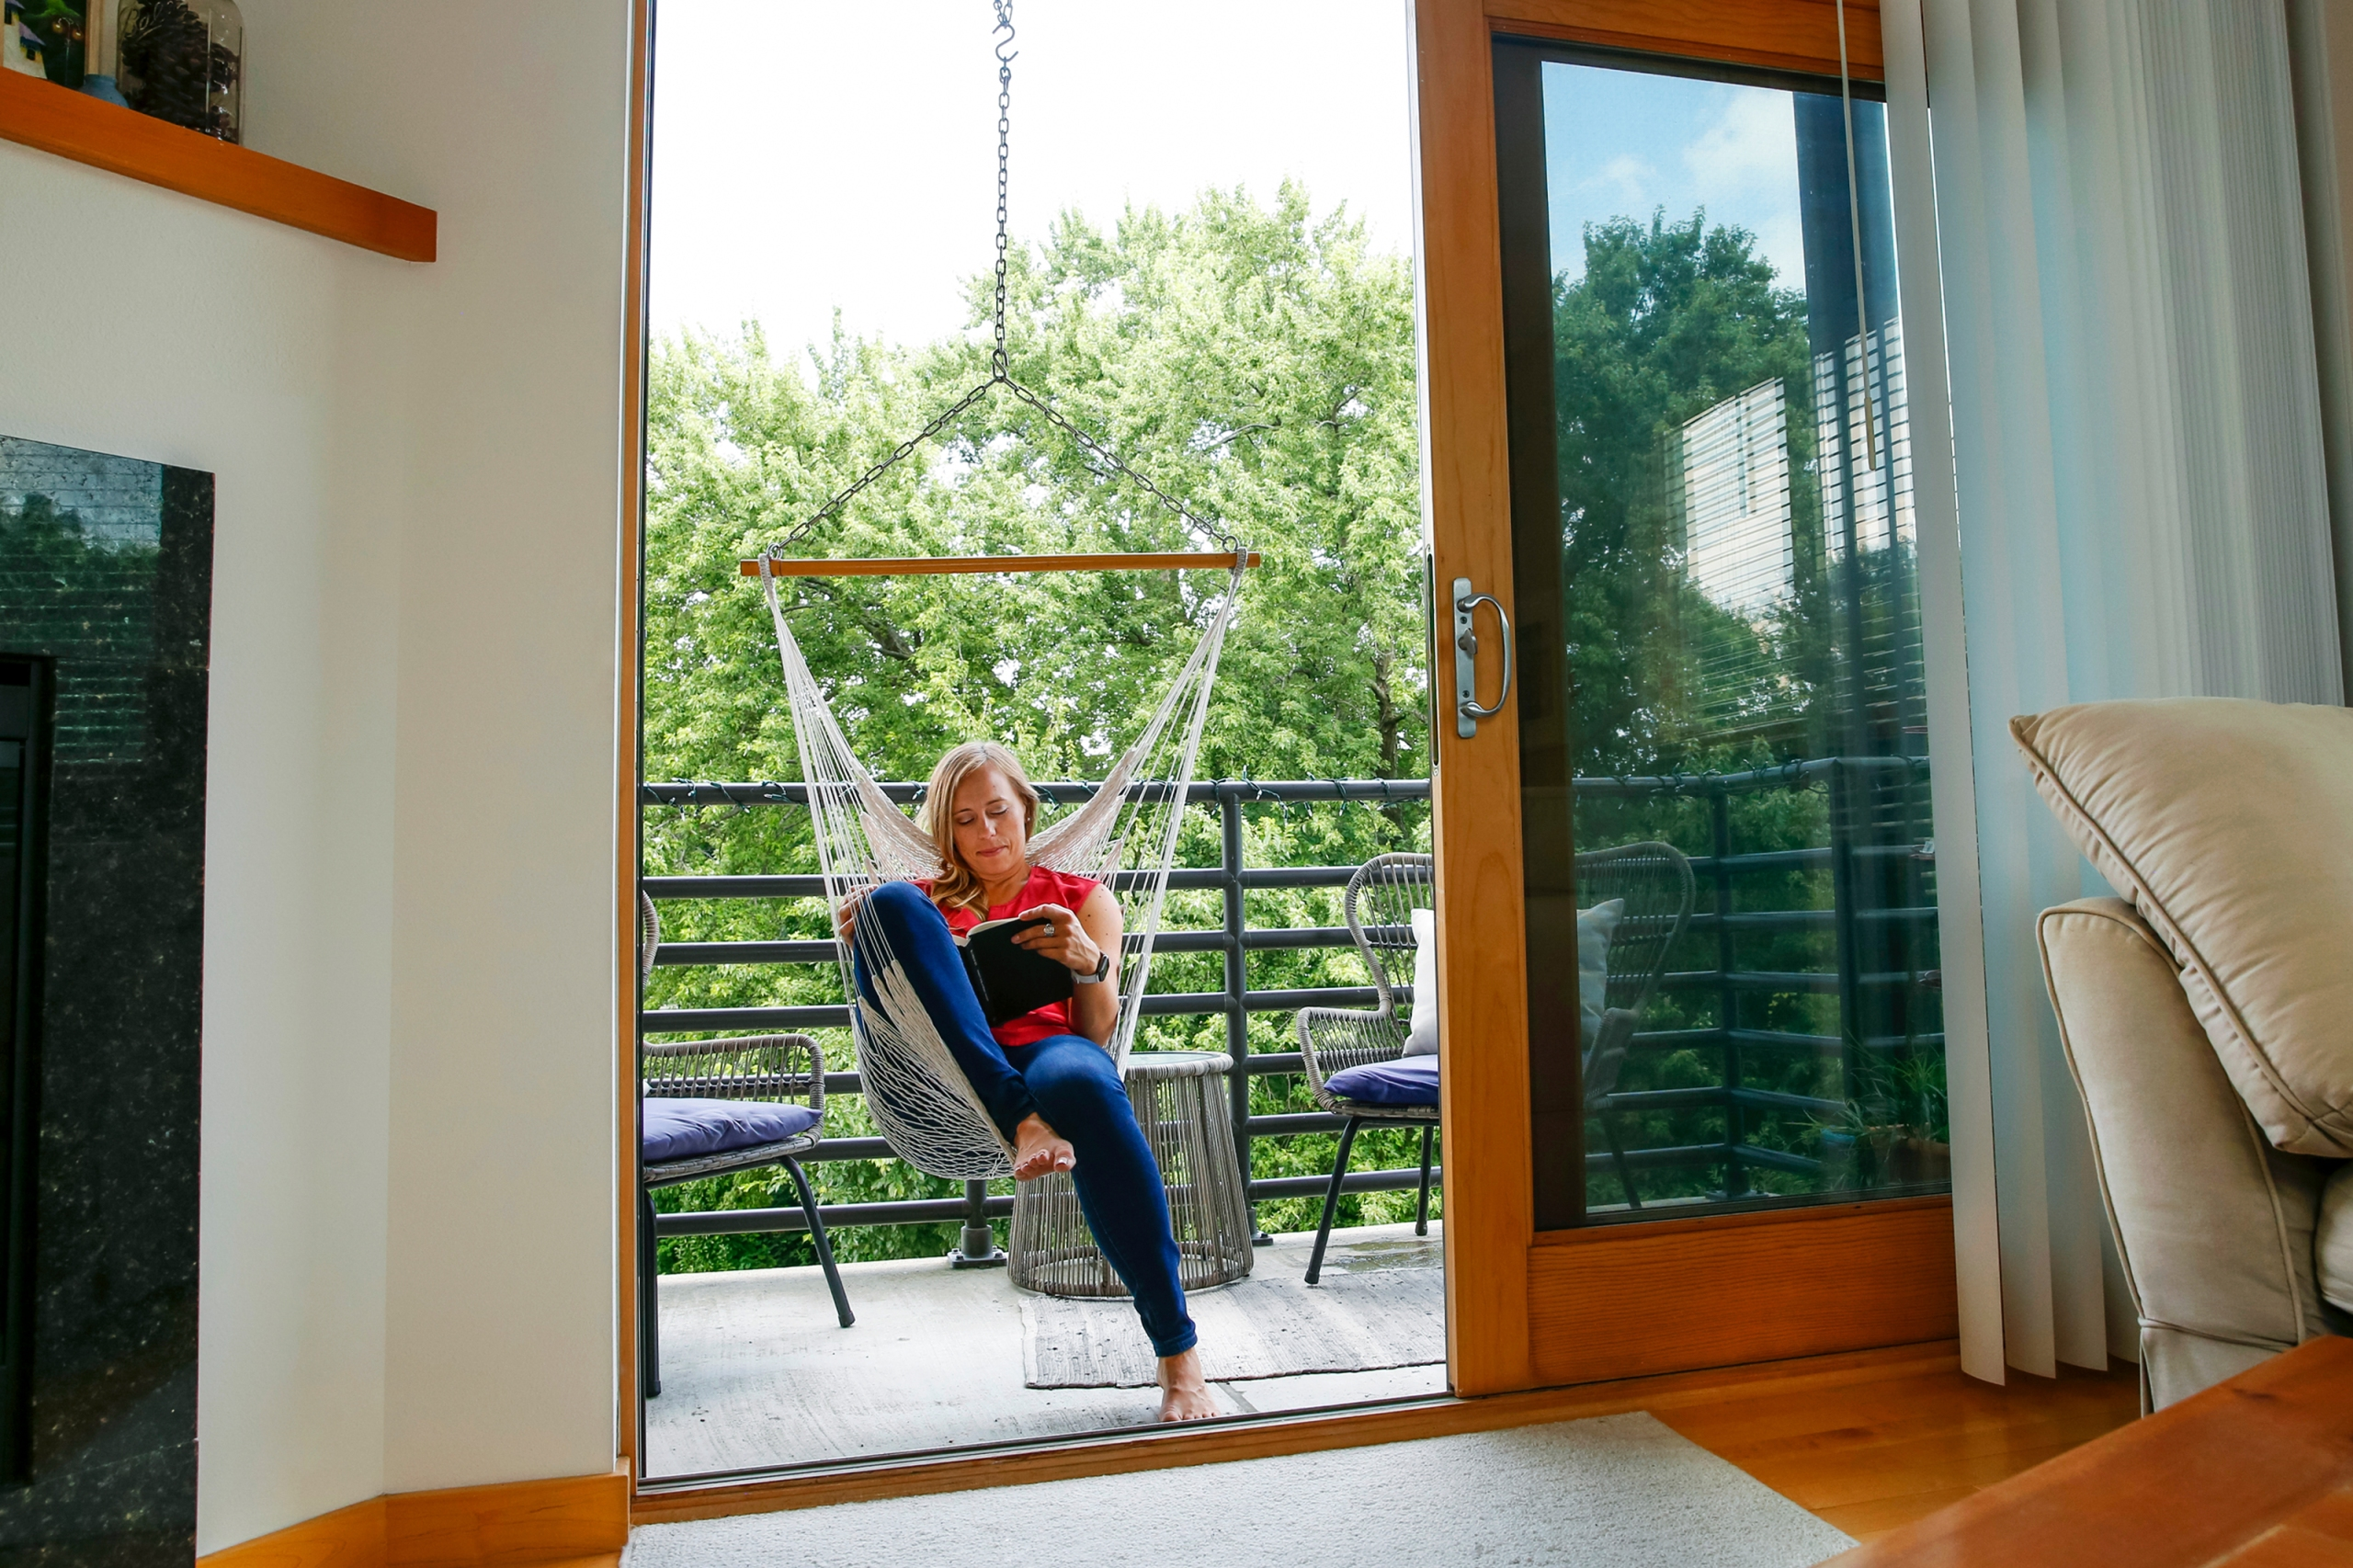 Andrea Lawson in a chair hammock enjoying her condo balcony